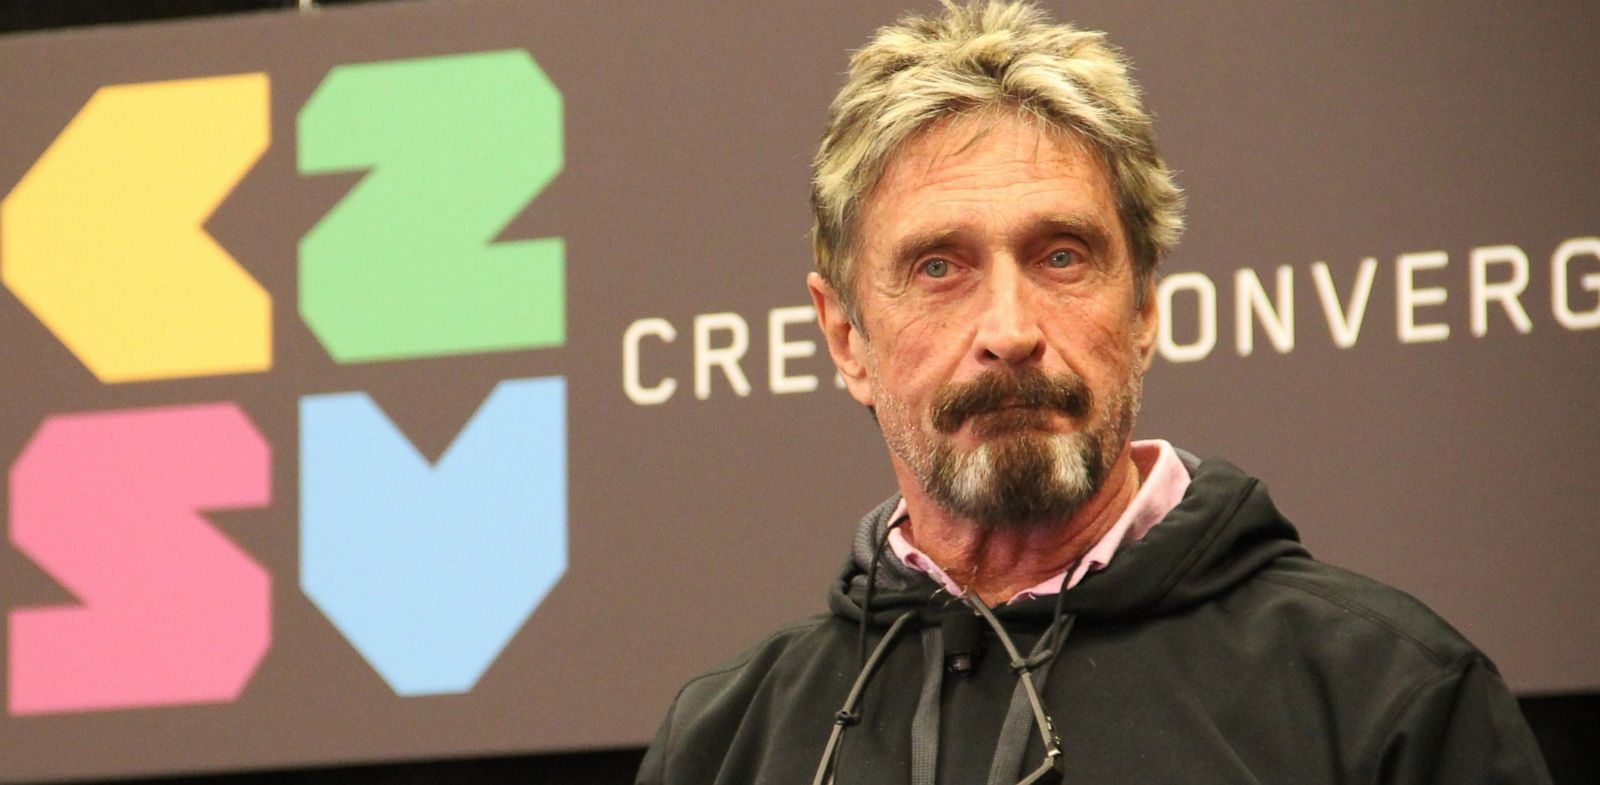 PHOTO: John McAfee , Future Tense Central, C2SV Conference